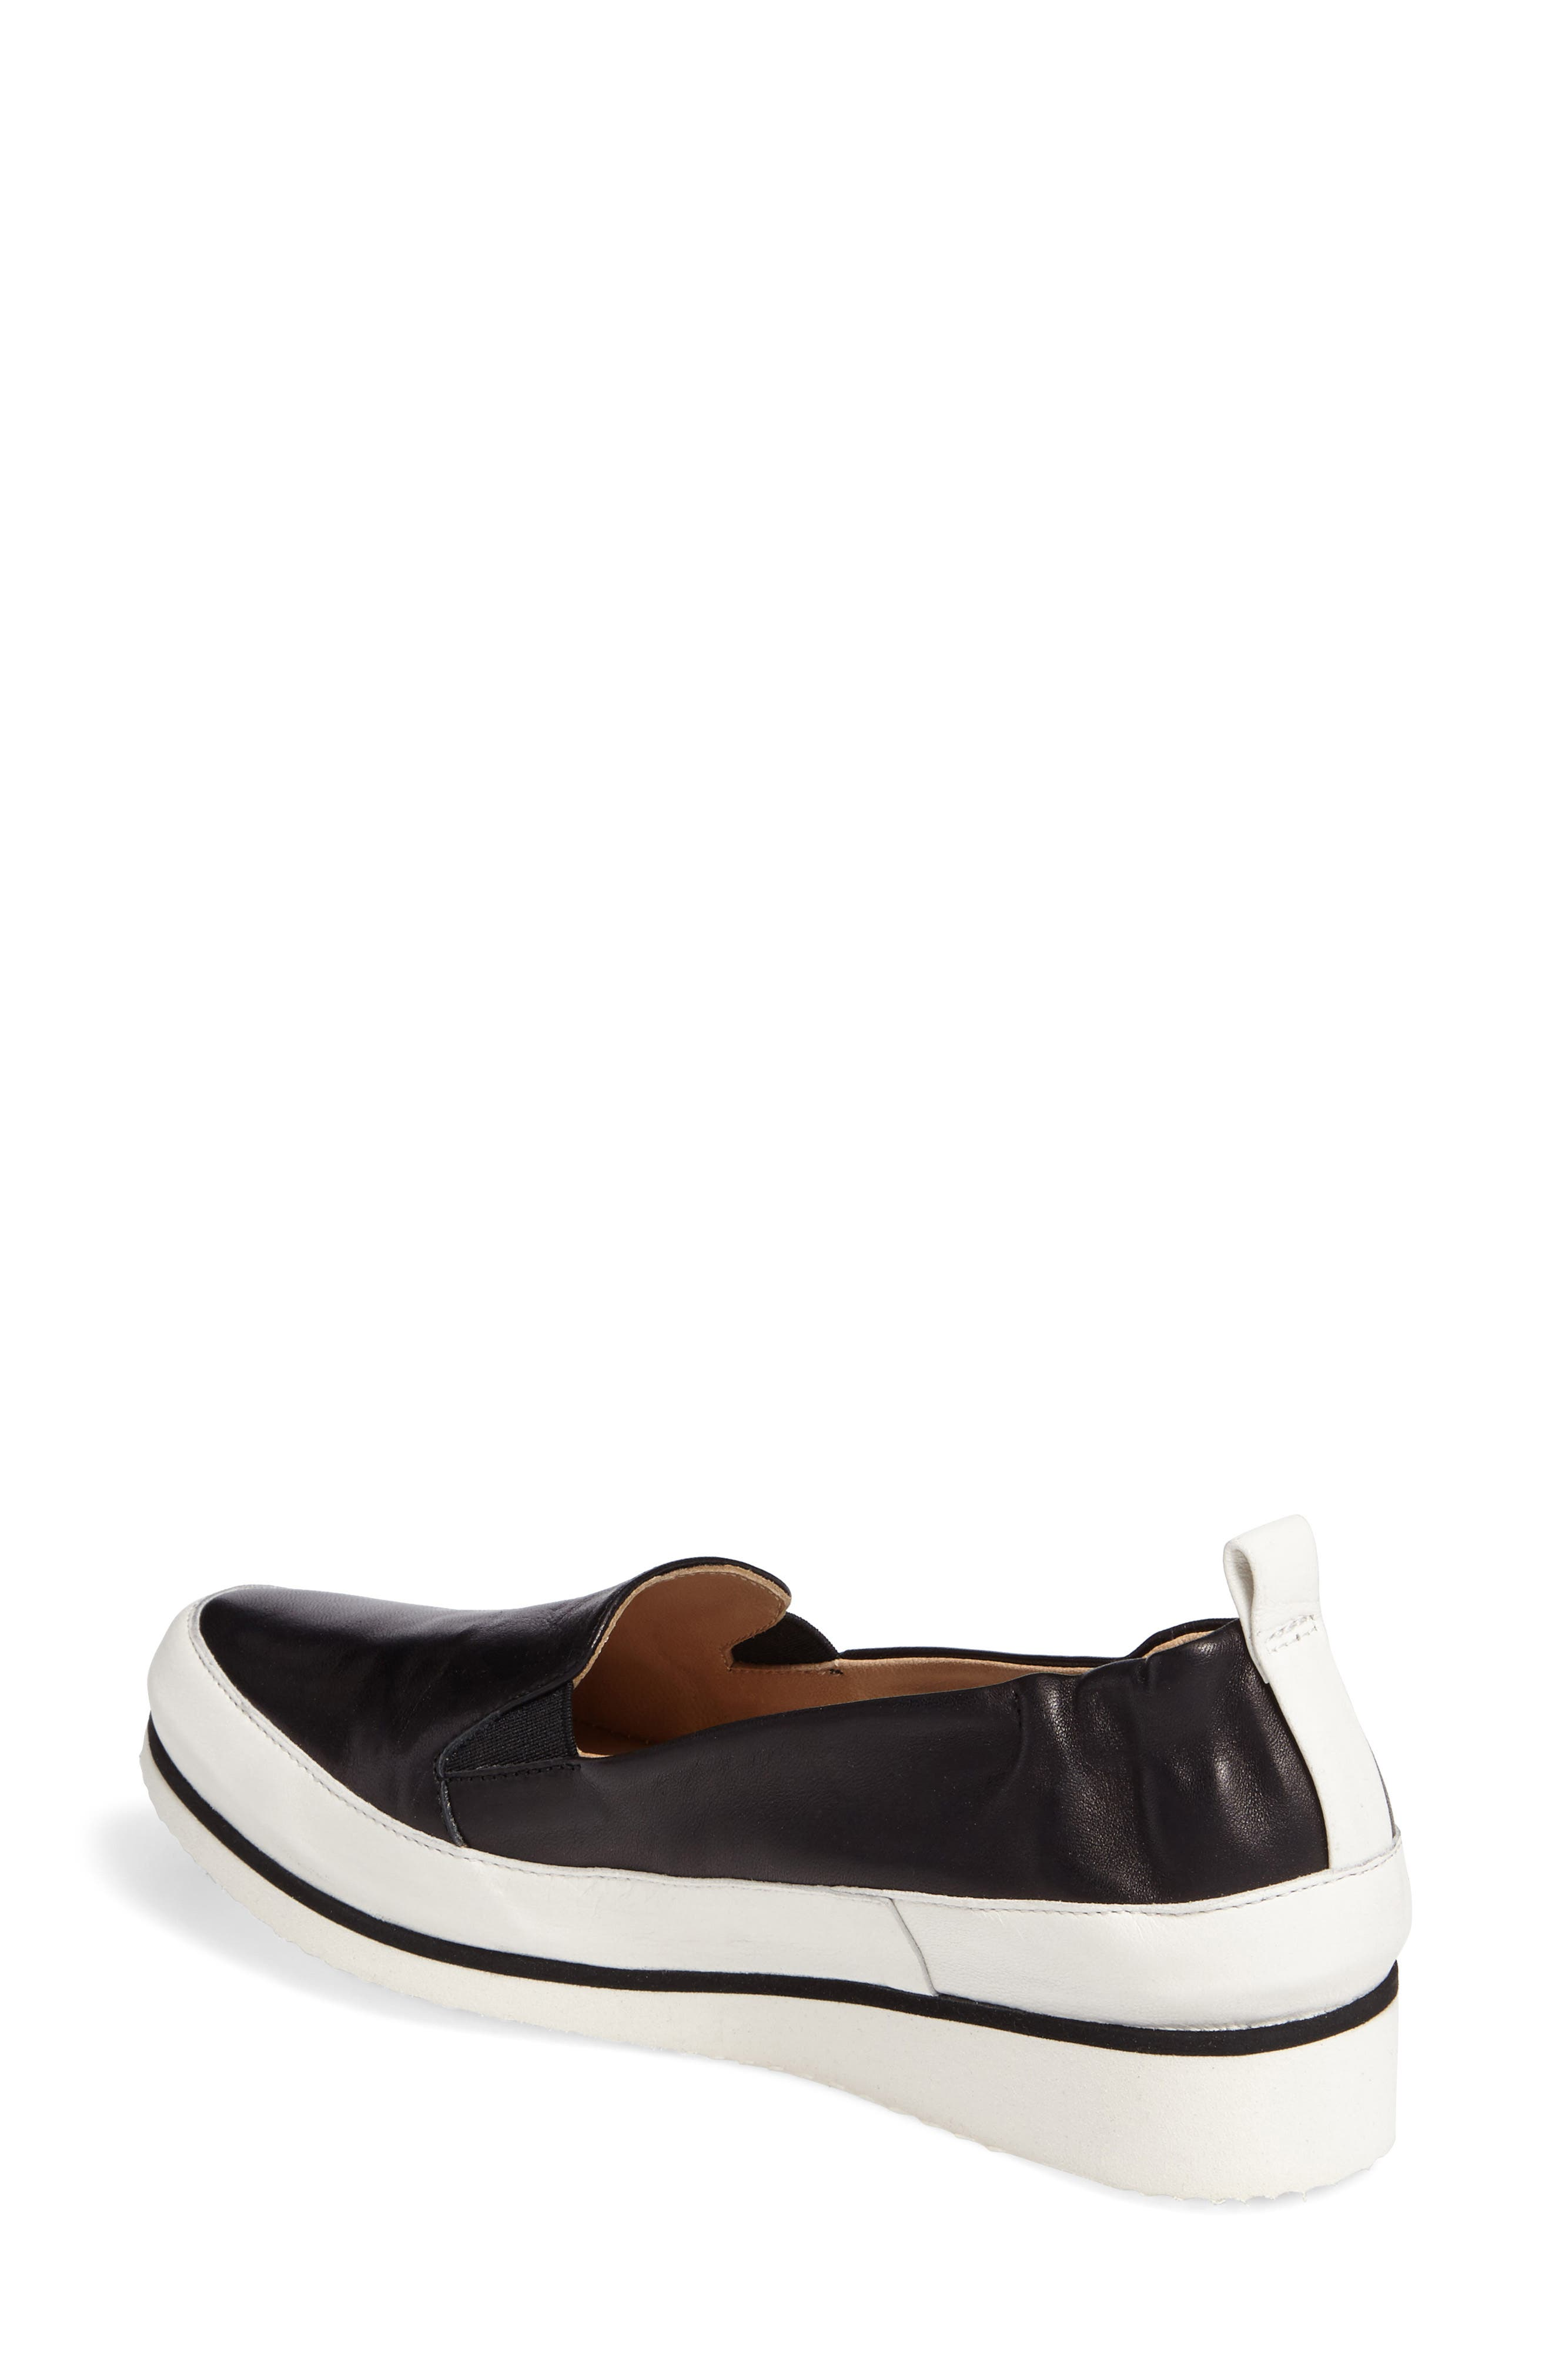 Nell Slip-On Sneaker,                             Alternate thumbnail 11, color,